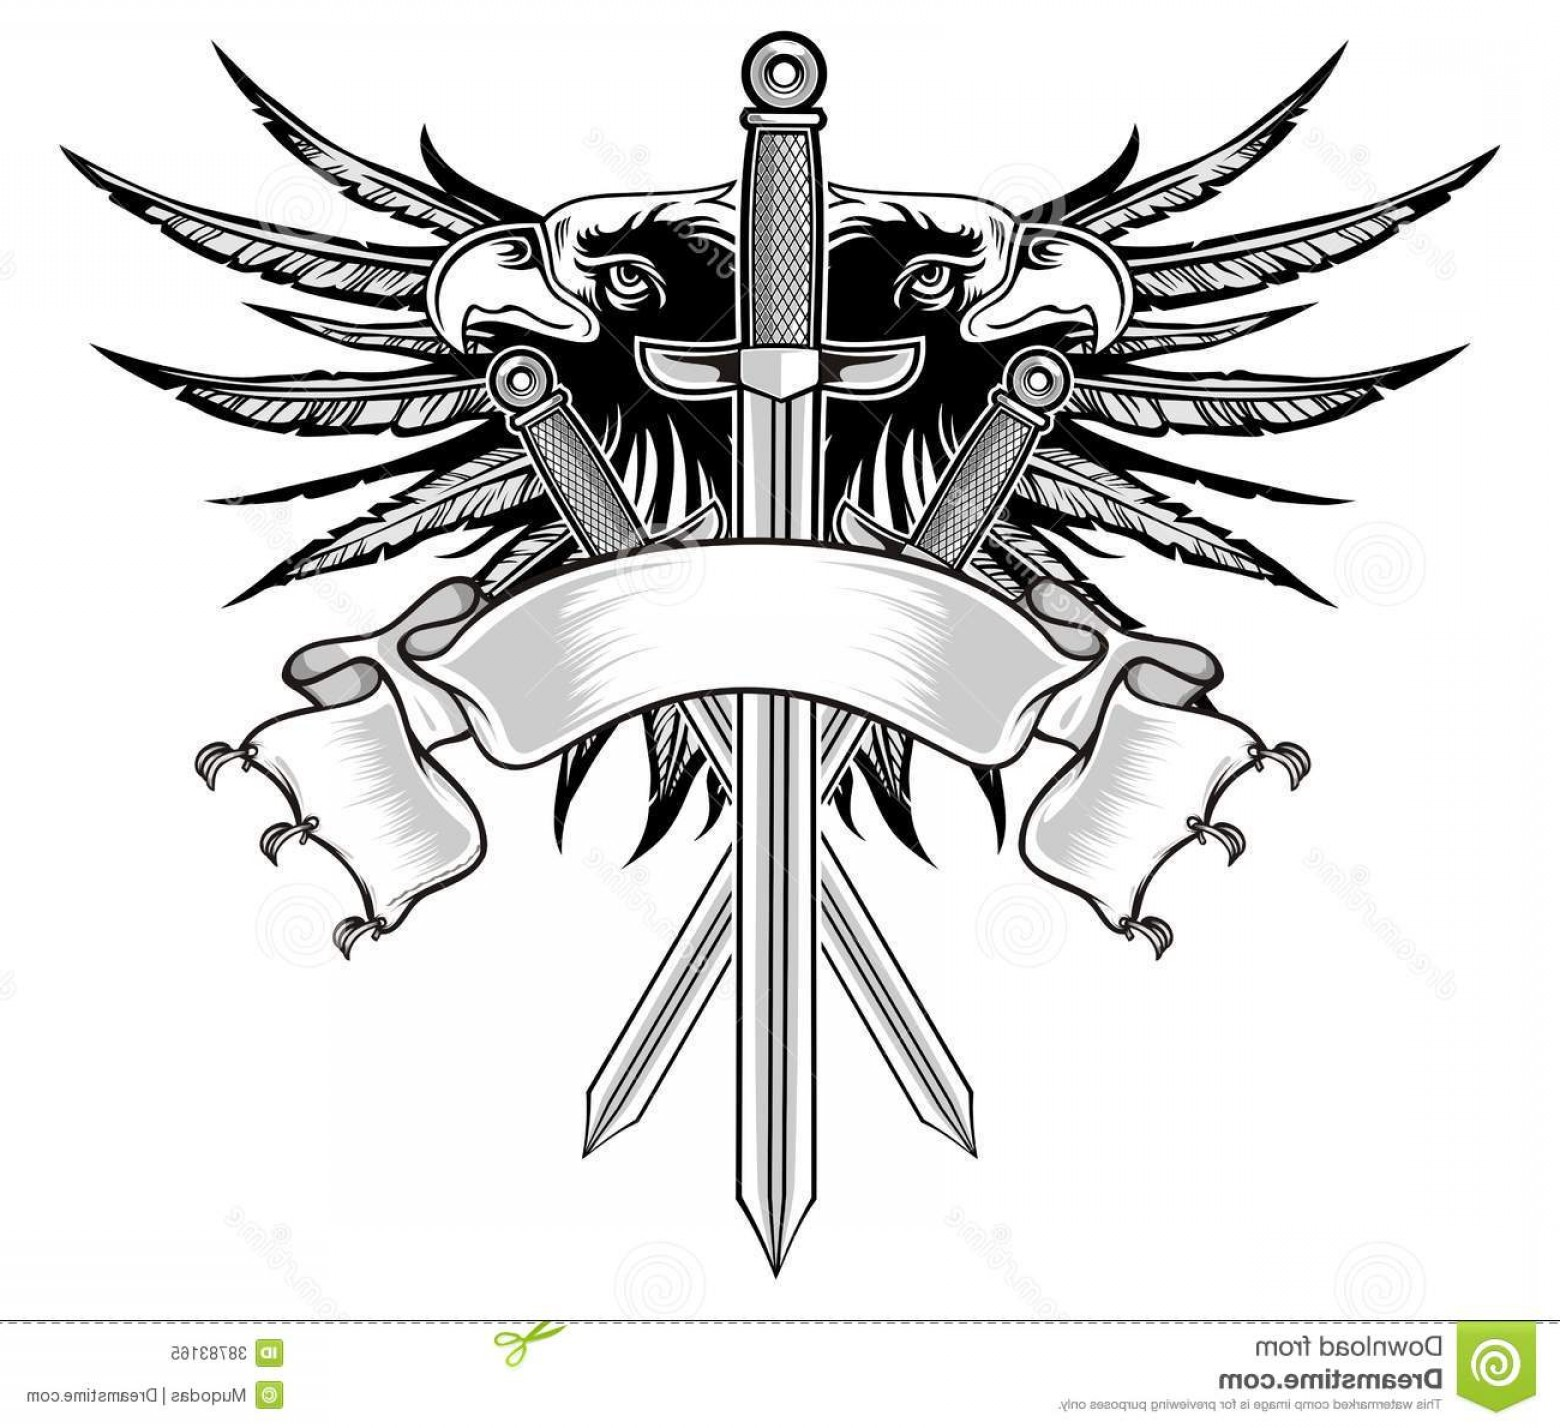 Vector Eagle Shield Sword: Royalty Free Stock Photo Eagle Sword Warrior Swords Two Wings Background Image